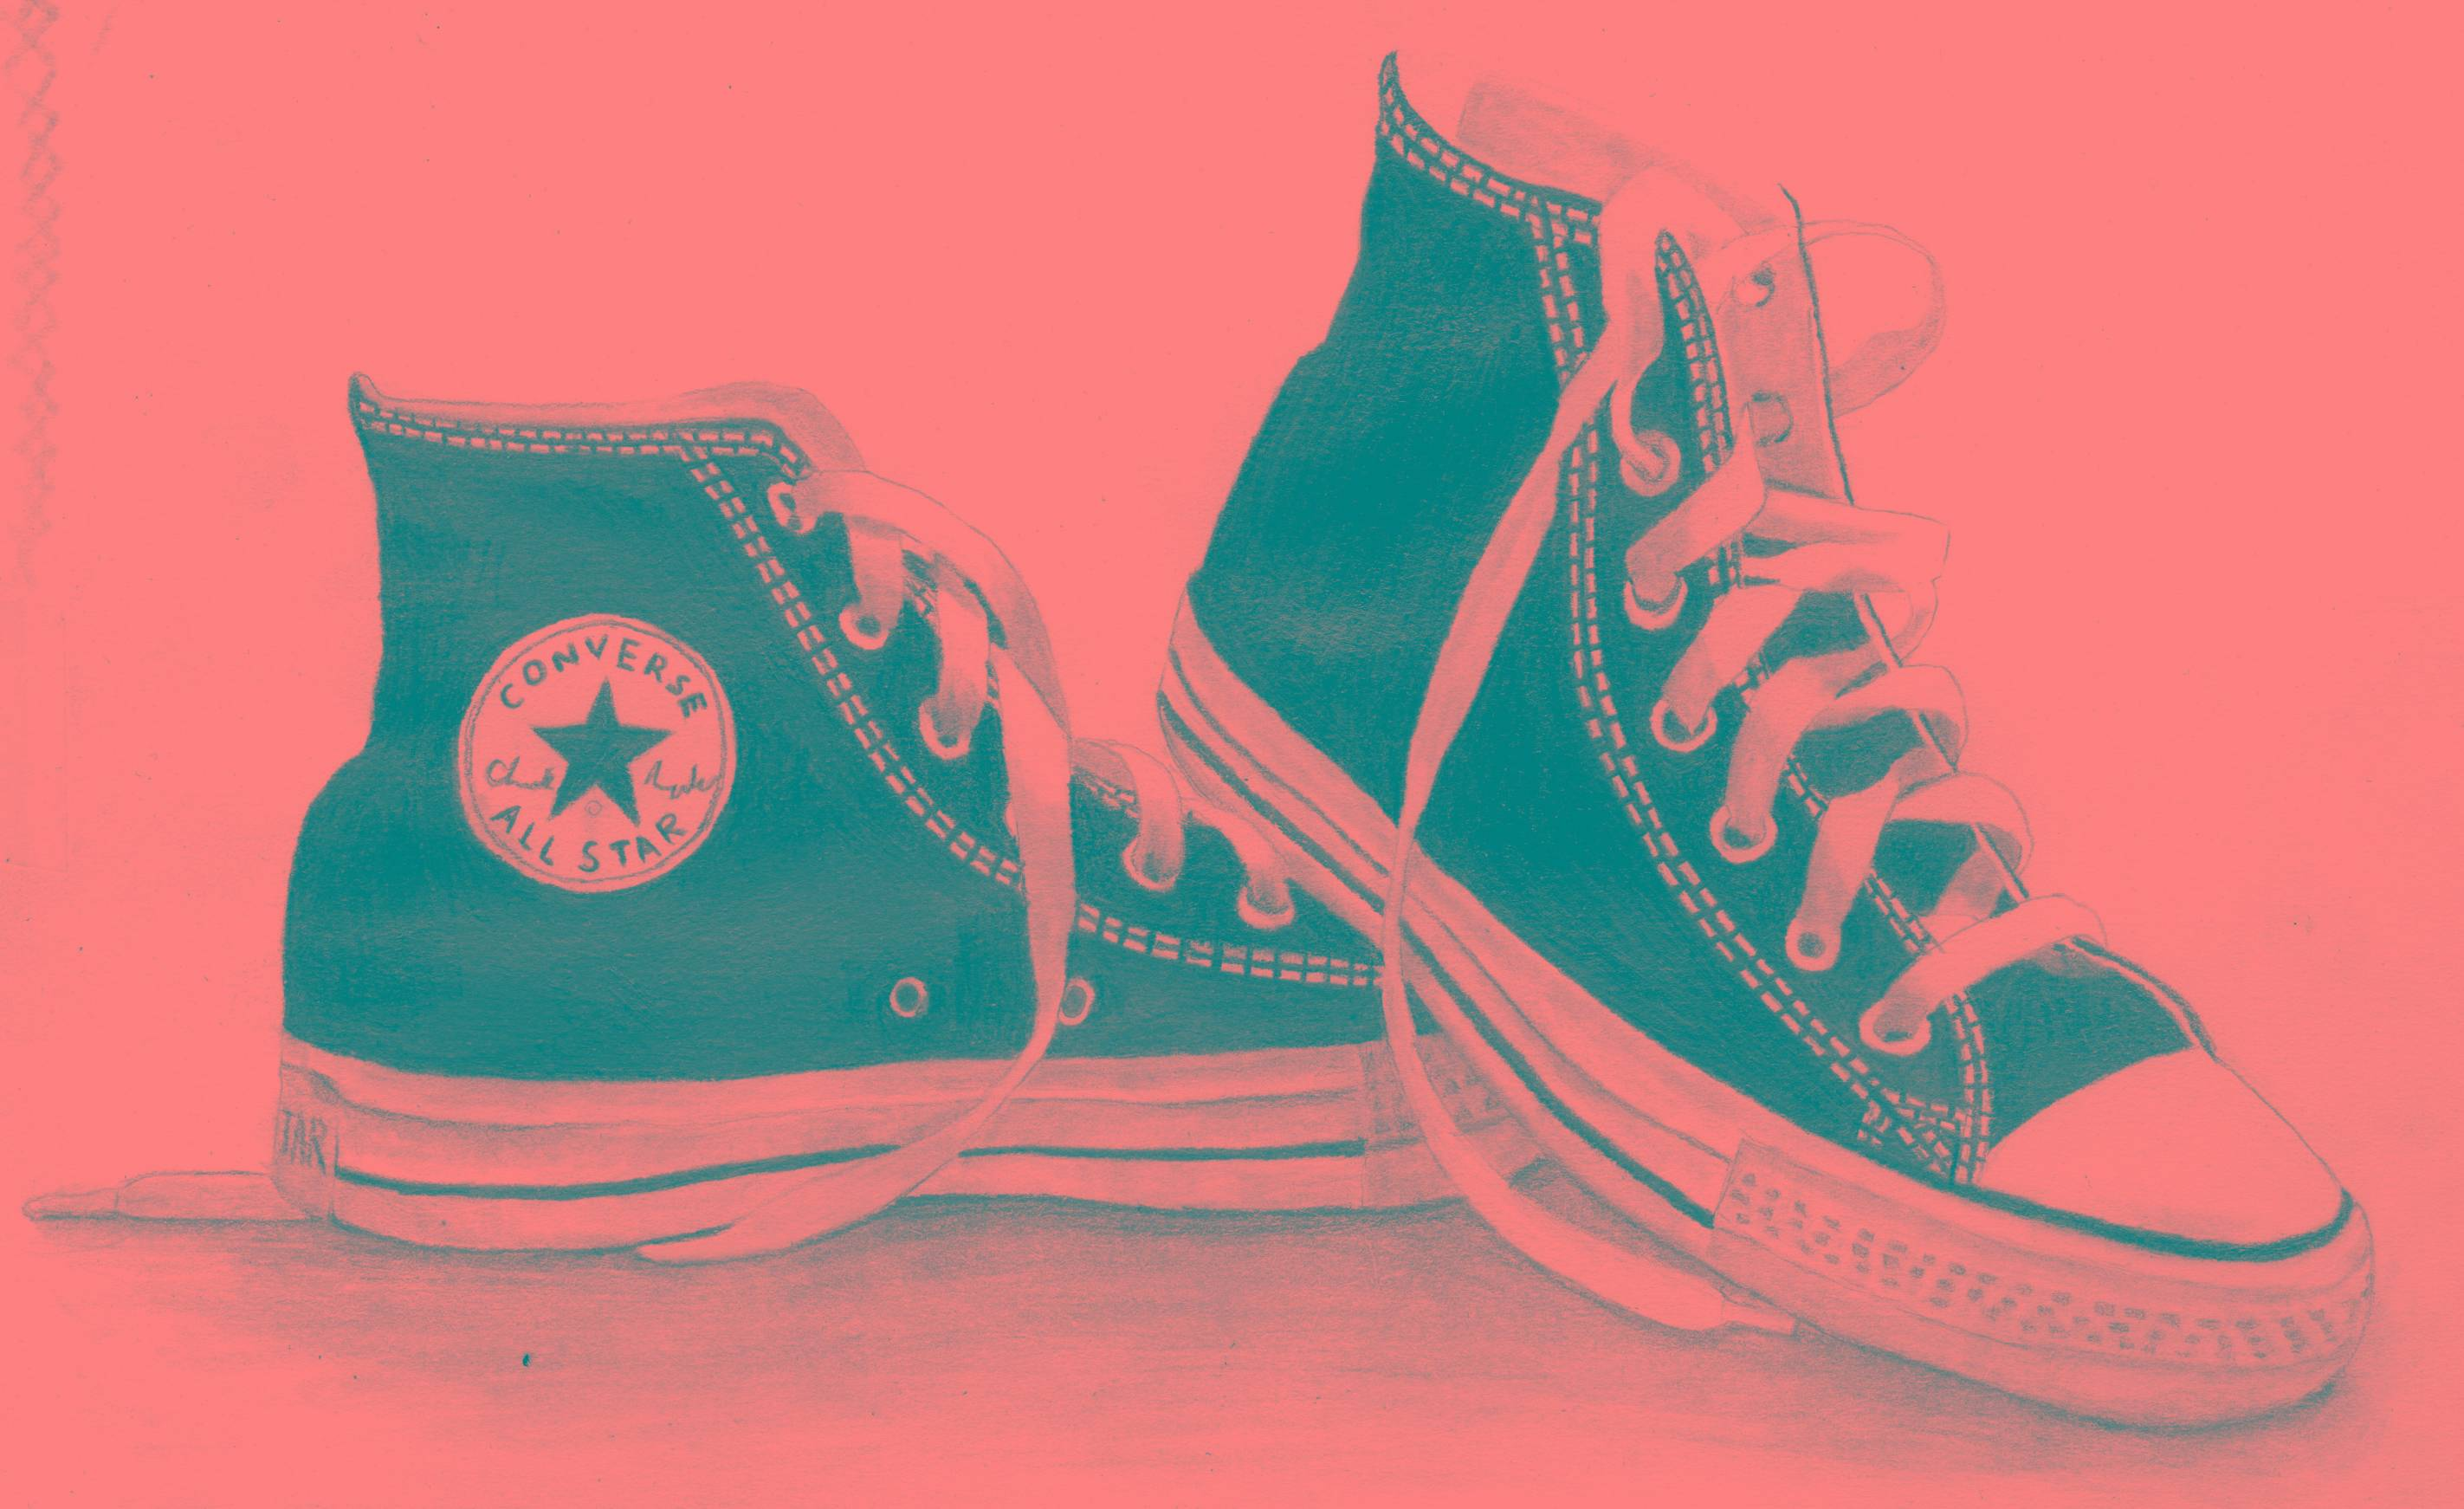 Converse All Star Wallpapers Wallpaper Cave HD Wallpapers Download Free Images Wallpaper [1000image.com]